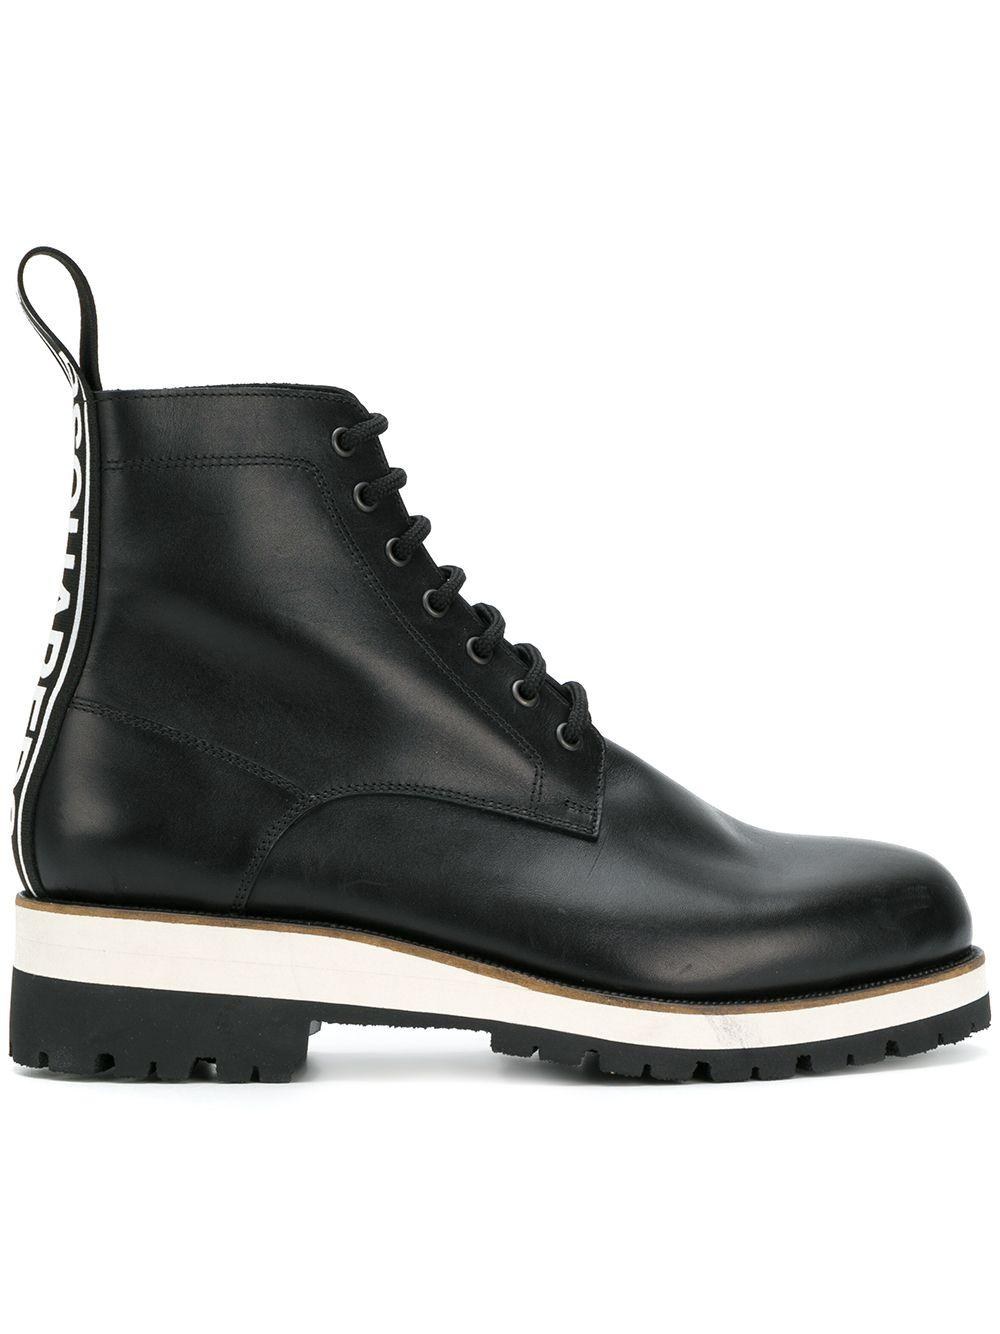 4f564dbfccb66c Dsquared2 Men s Leather Lace-Up Ankle Boot In Black